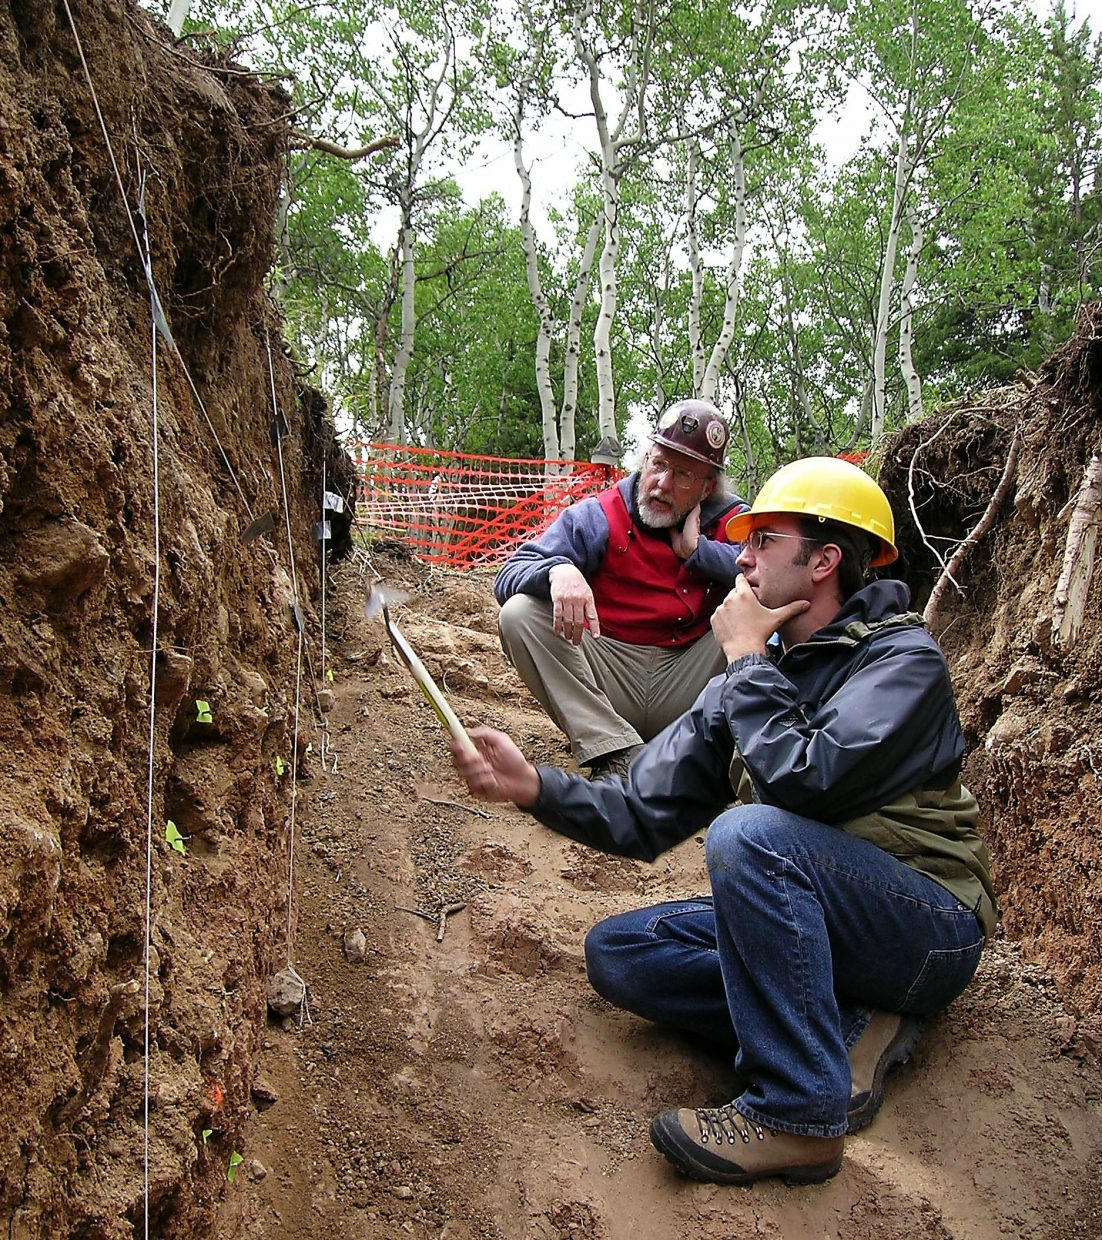 Geologists Matt Morgan and Robert Kirkham of the Colorado Geological Survey look for evidence of movement along a fault after trenching through soils deformed by a fault and mapping their internal structure.